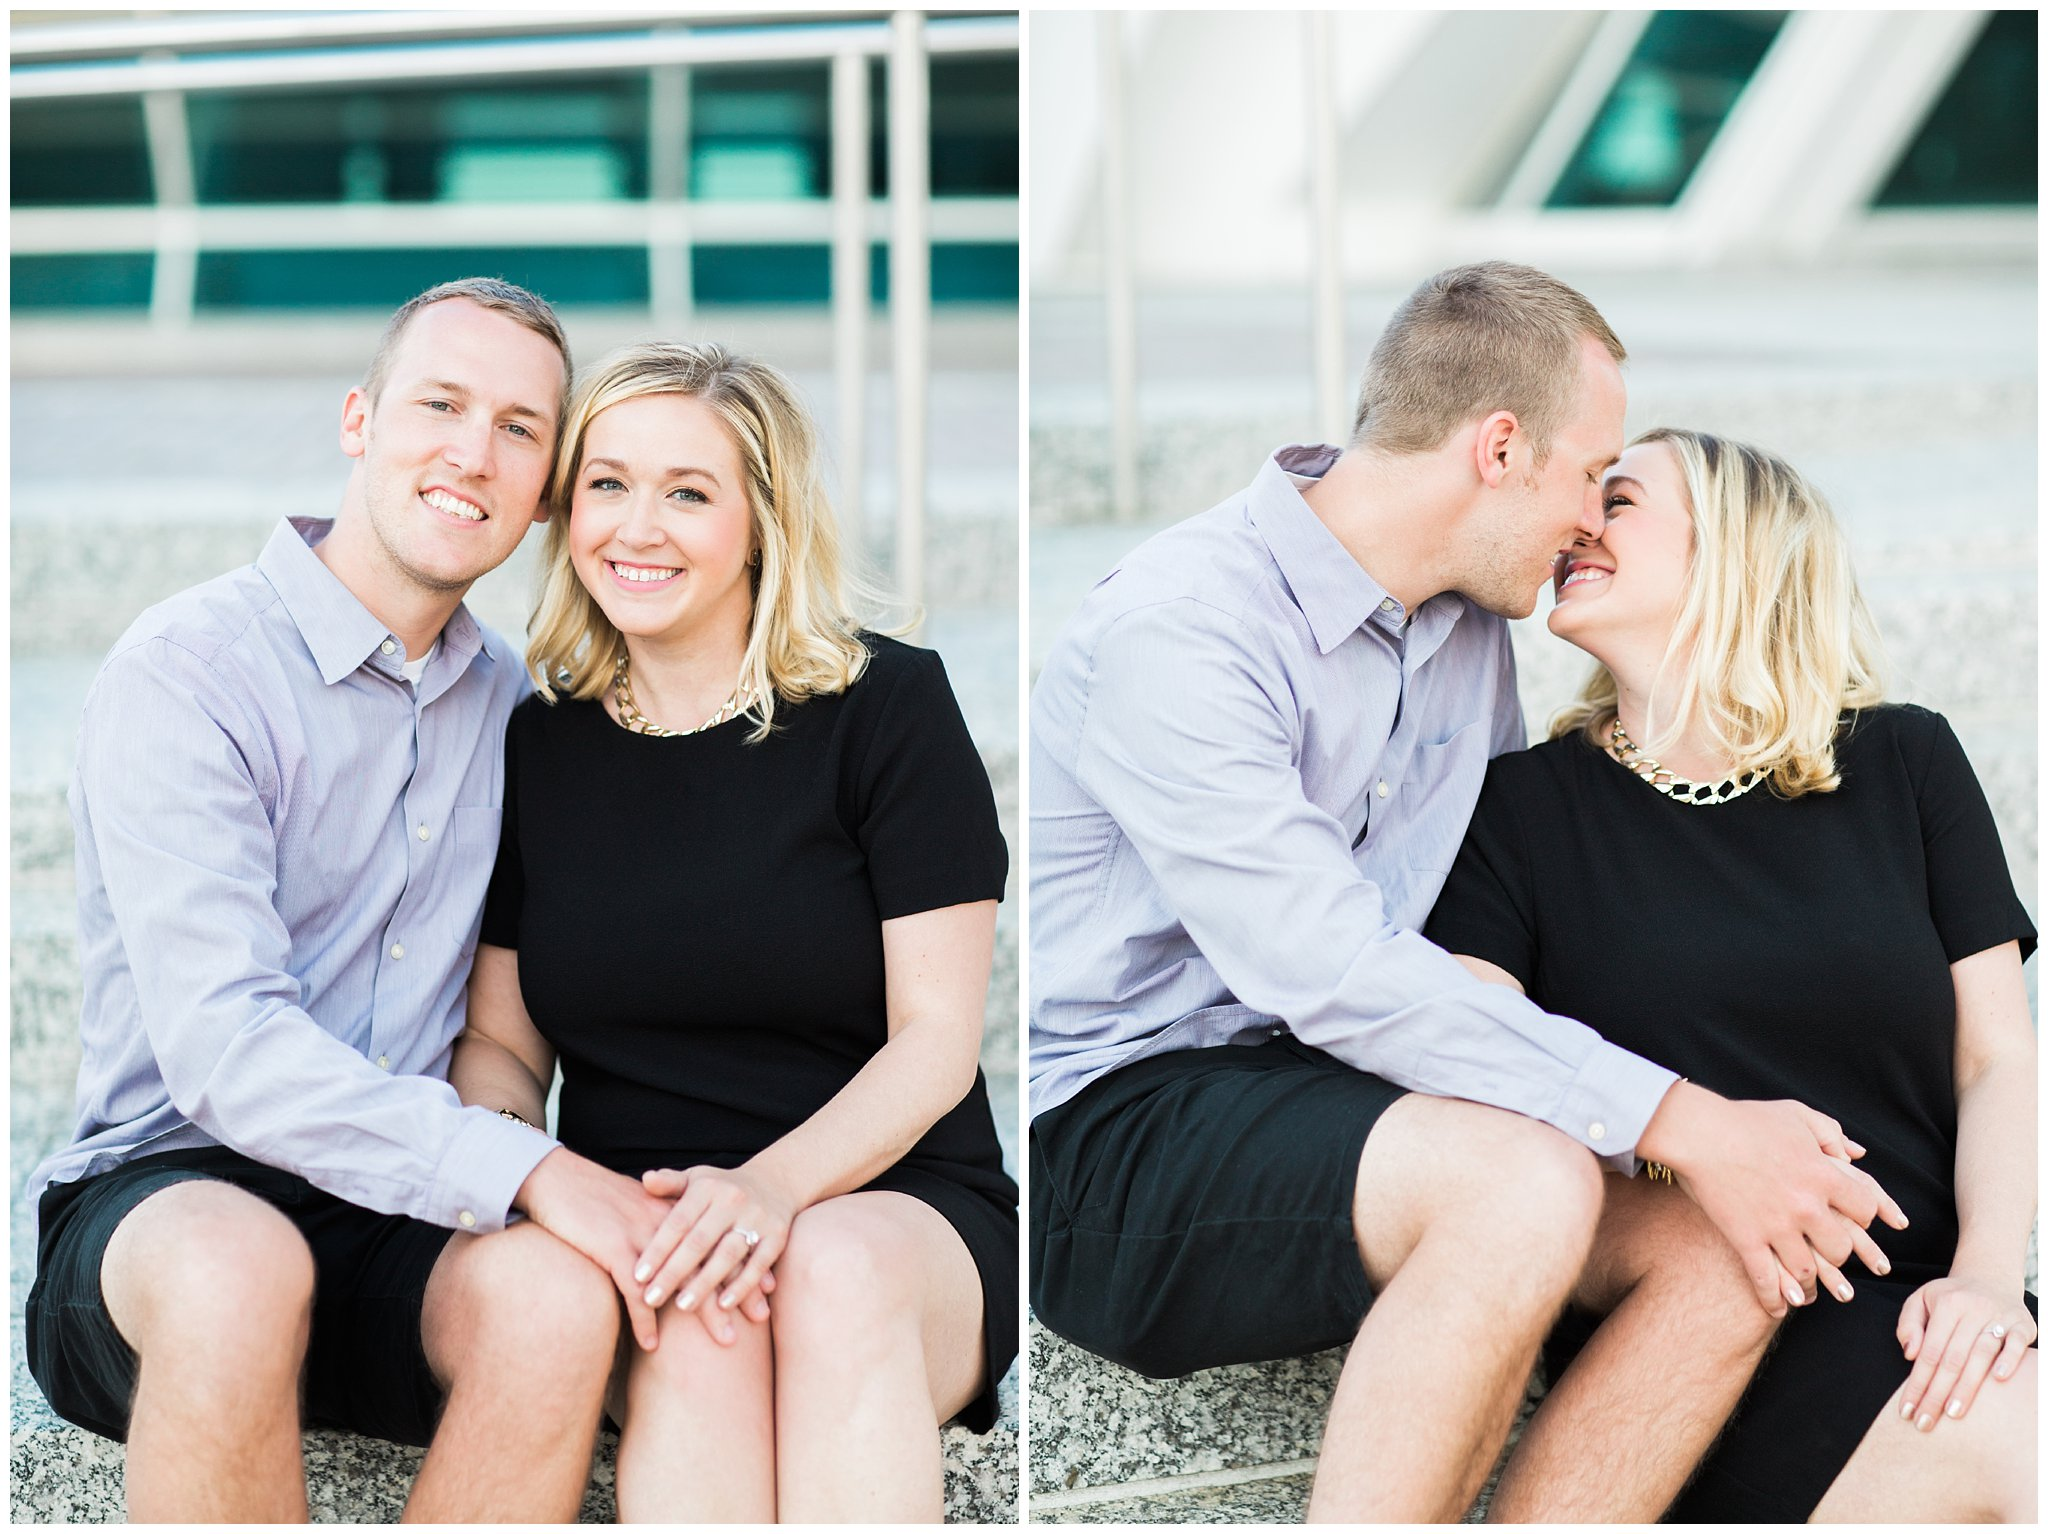 C&G_MilwaukeeEngagementSession__0118.jpg